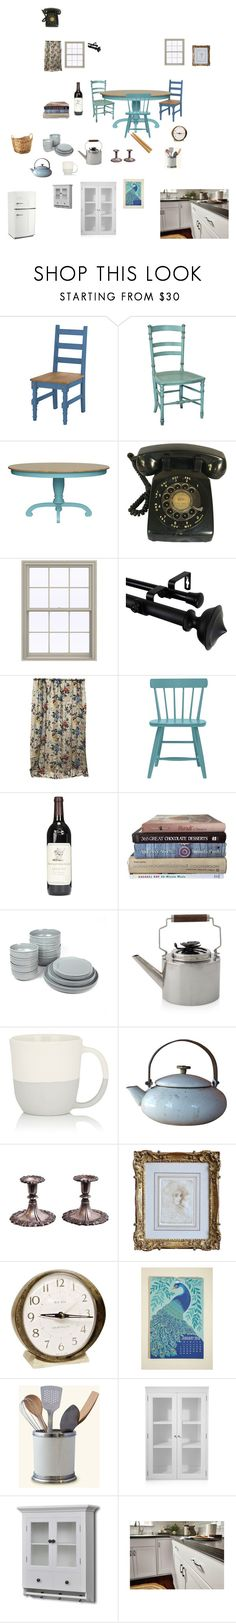 """Shaun the sheep kitchen"" by suecia on Polyvore featuring interior, interiors, interior design, hogar, home decor, interior decorating, Redford House, Rod Desyne, GP & J Baker y Menu"